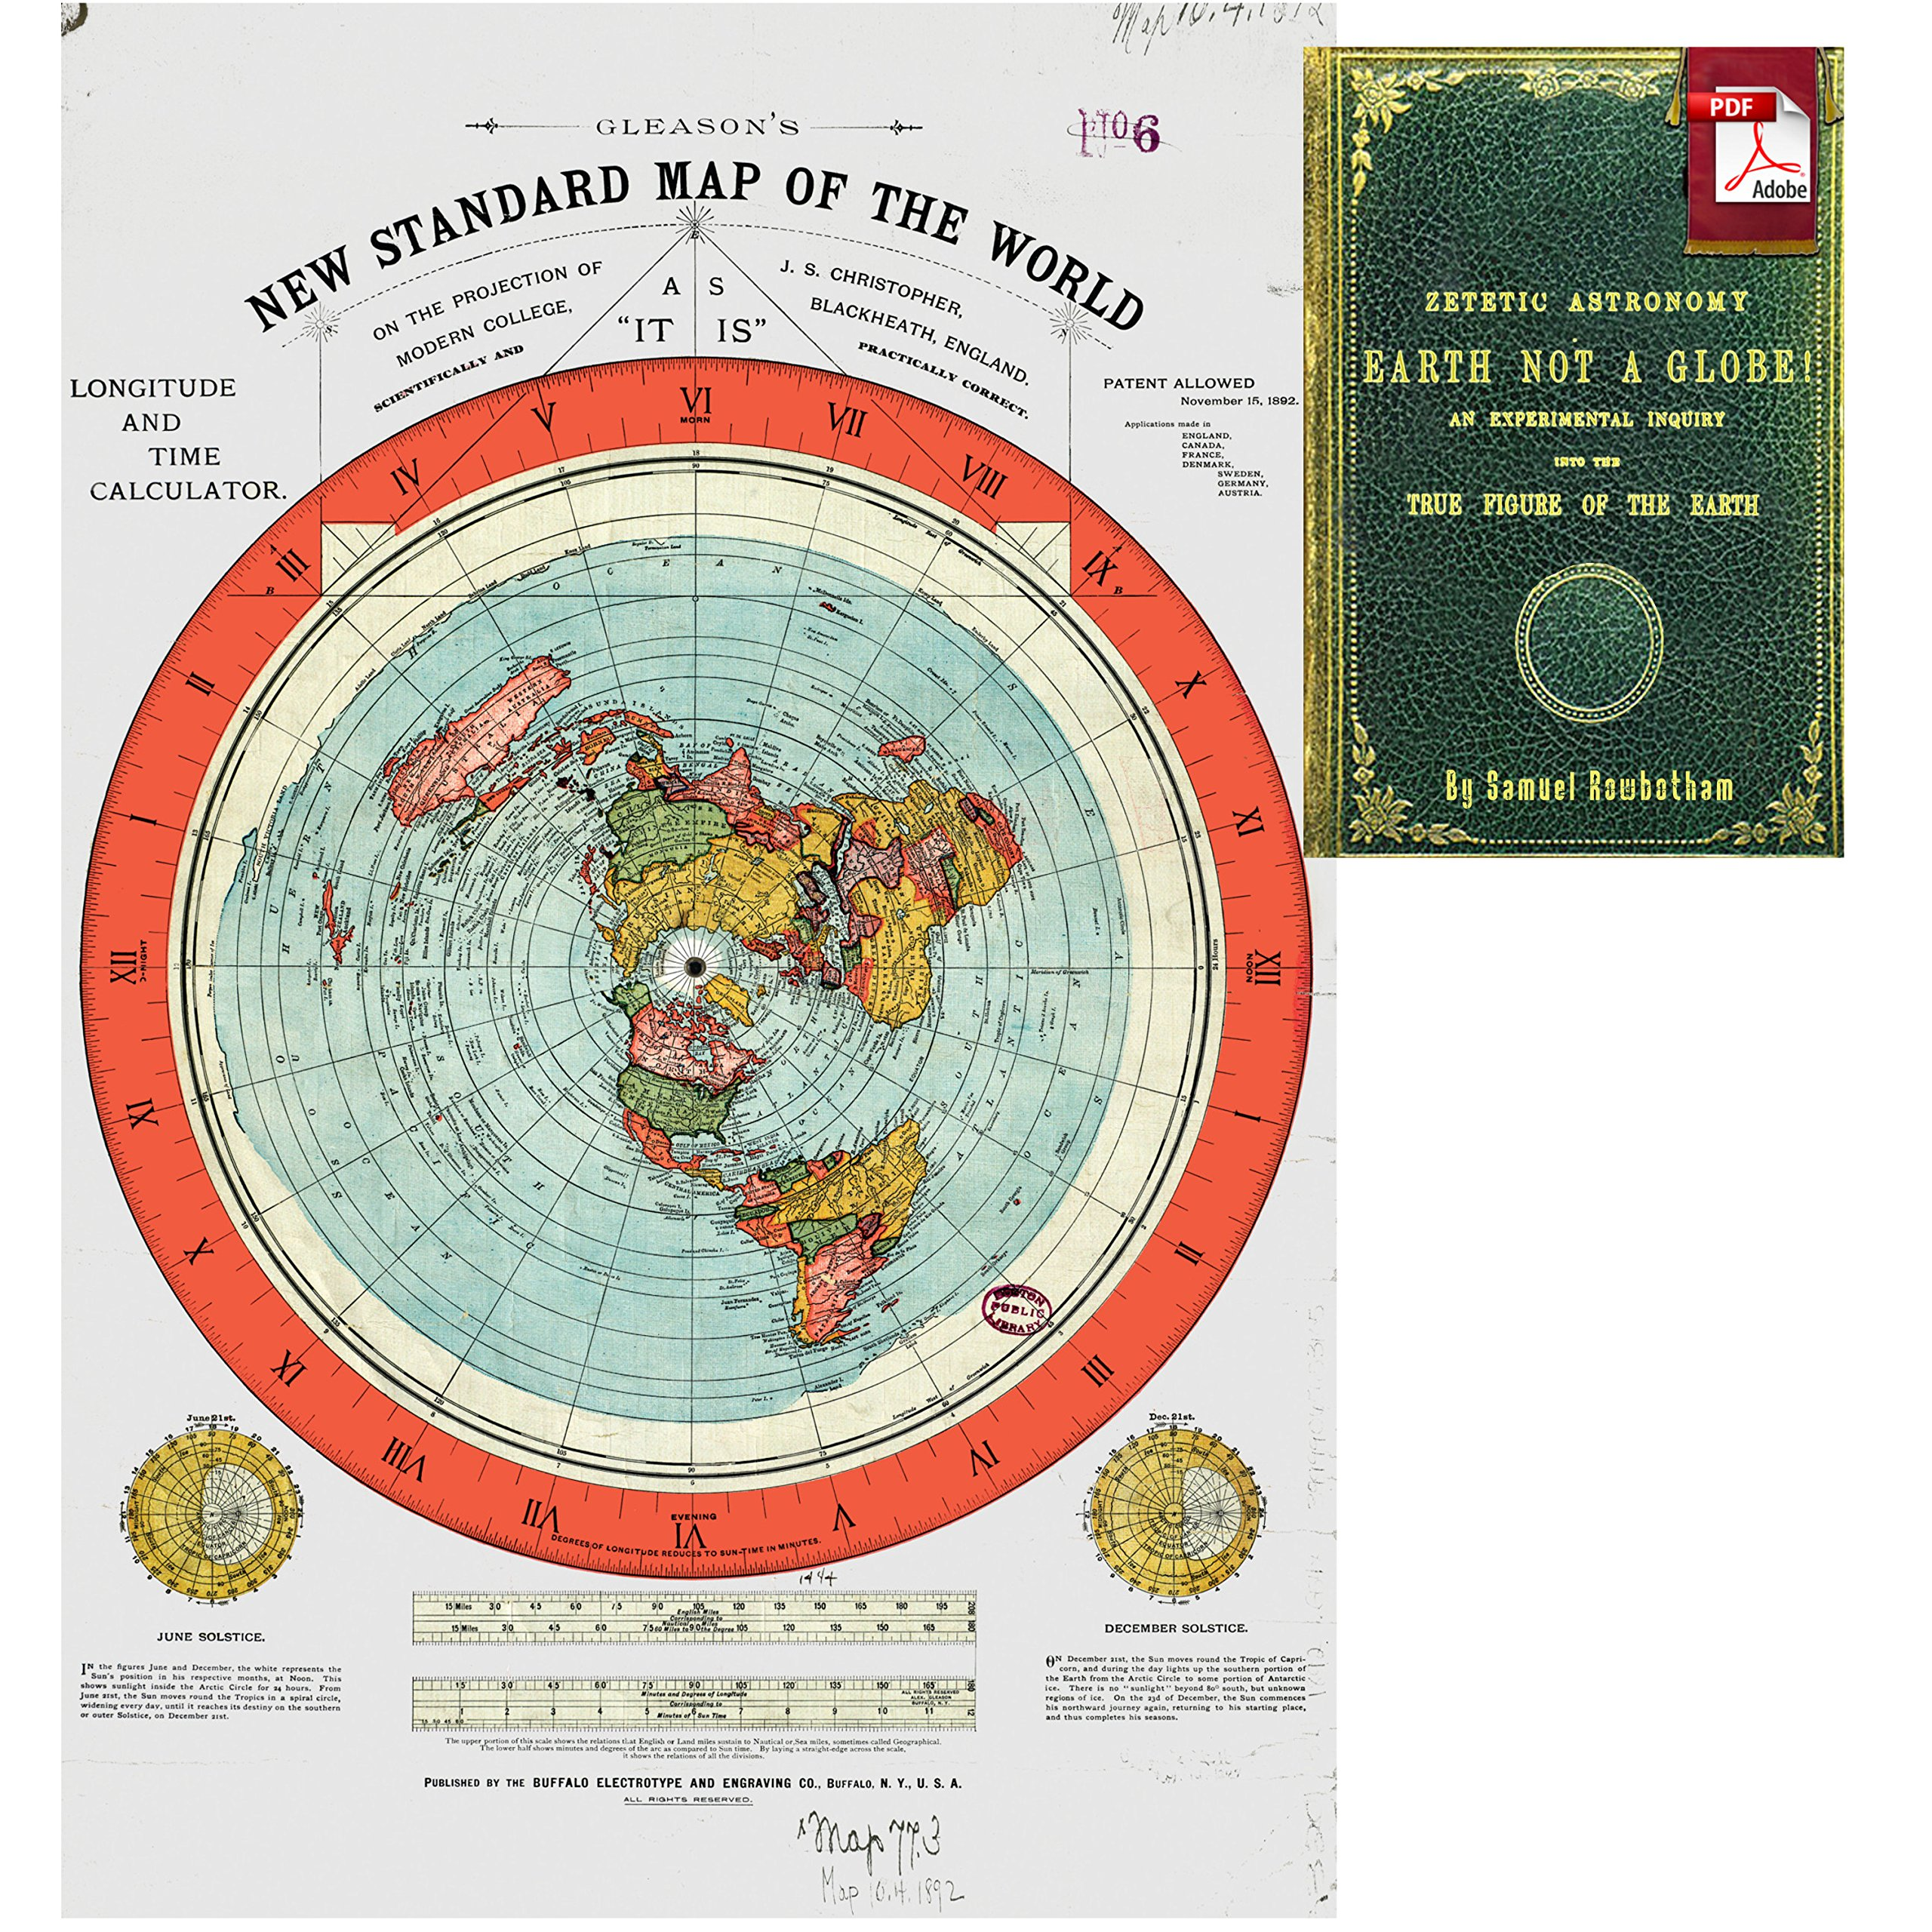 New Flat Earth Map.Flat Earth Map Gleason S New Standard Map Of The World Larg